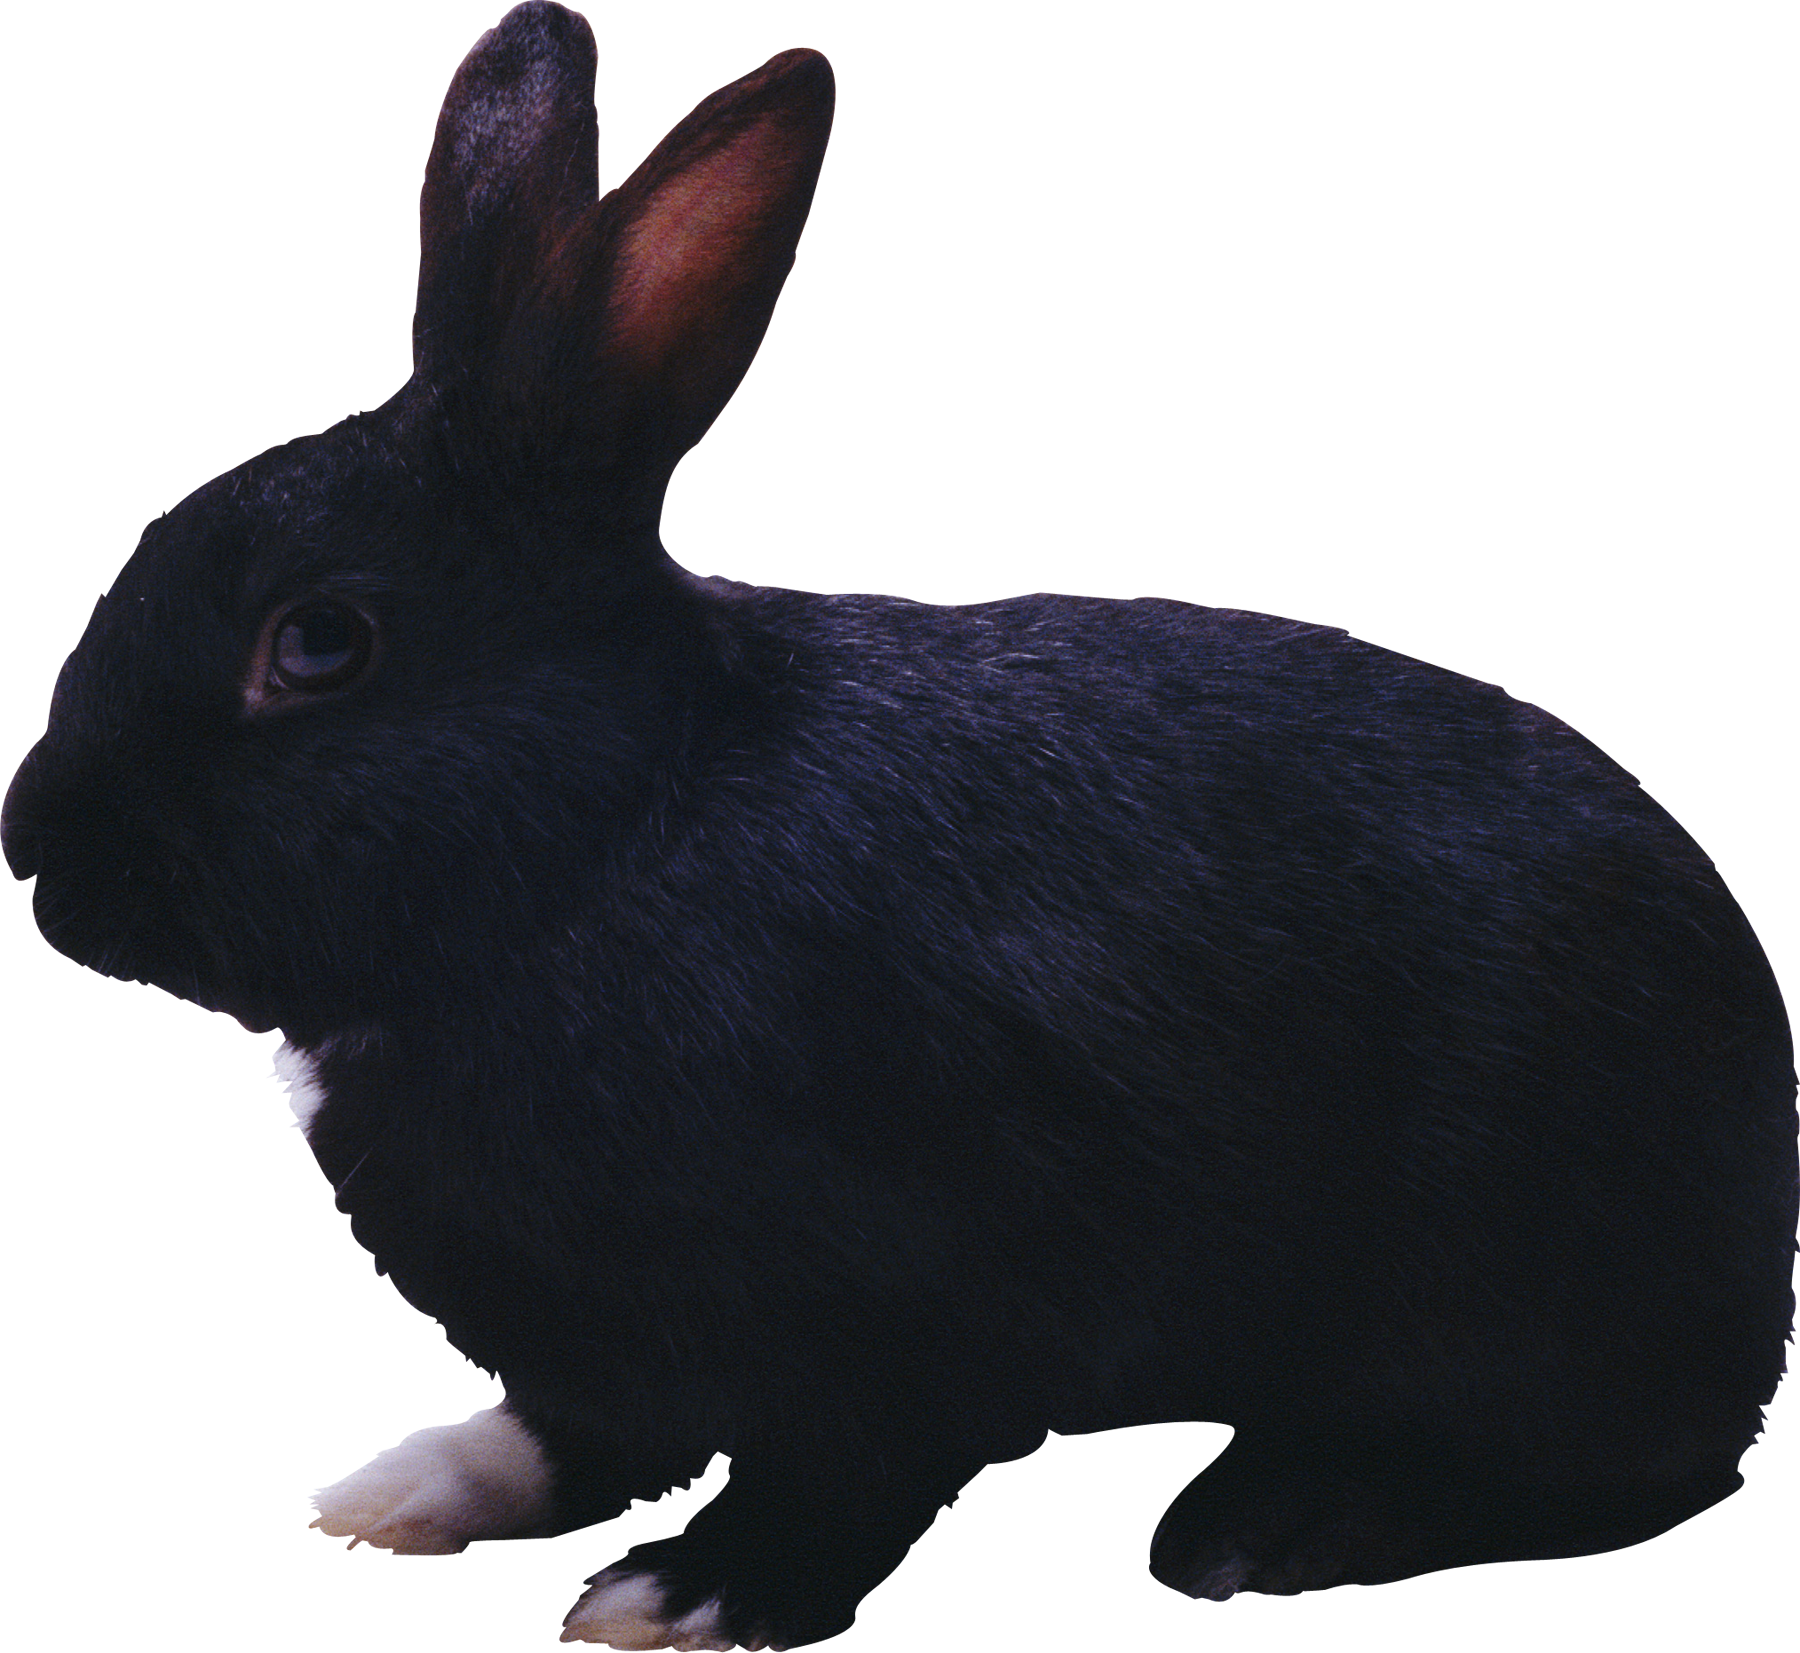 Clipart bunny mouth. Black rabbit png animal